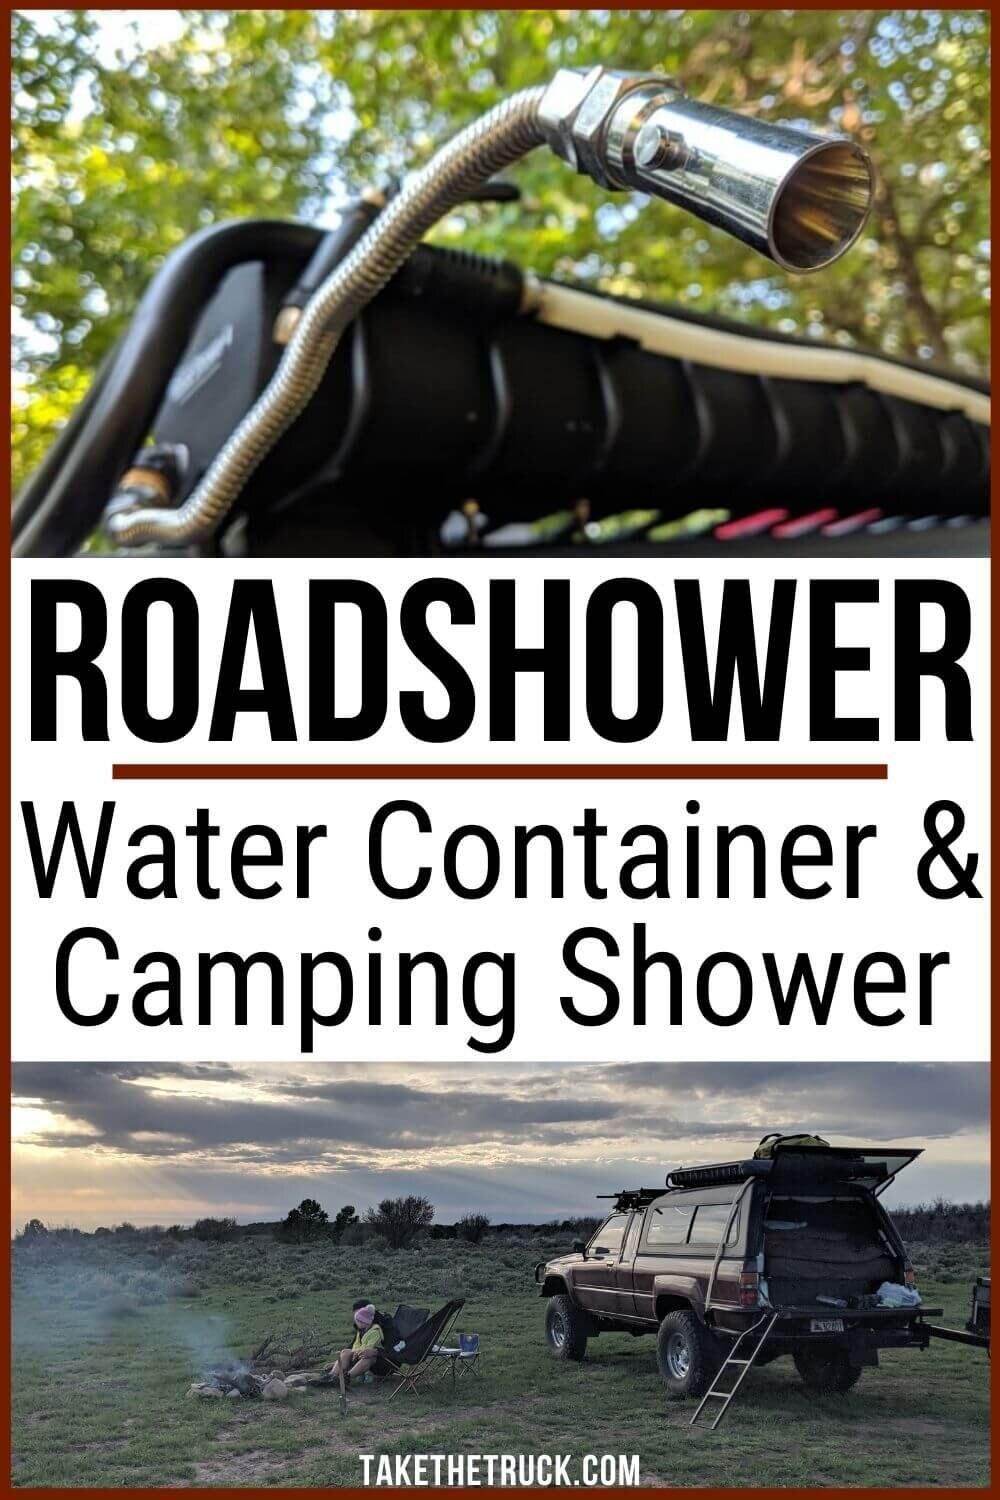 The Road Shower 4 is a truck camping water tank and shower, in one! The Roadshower makes a great outdoor shower for your camper and doubles as water storage for drinking.